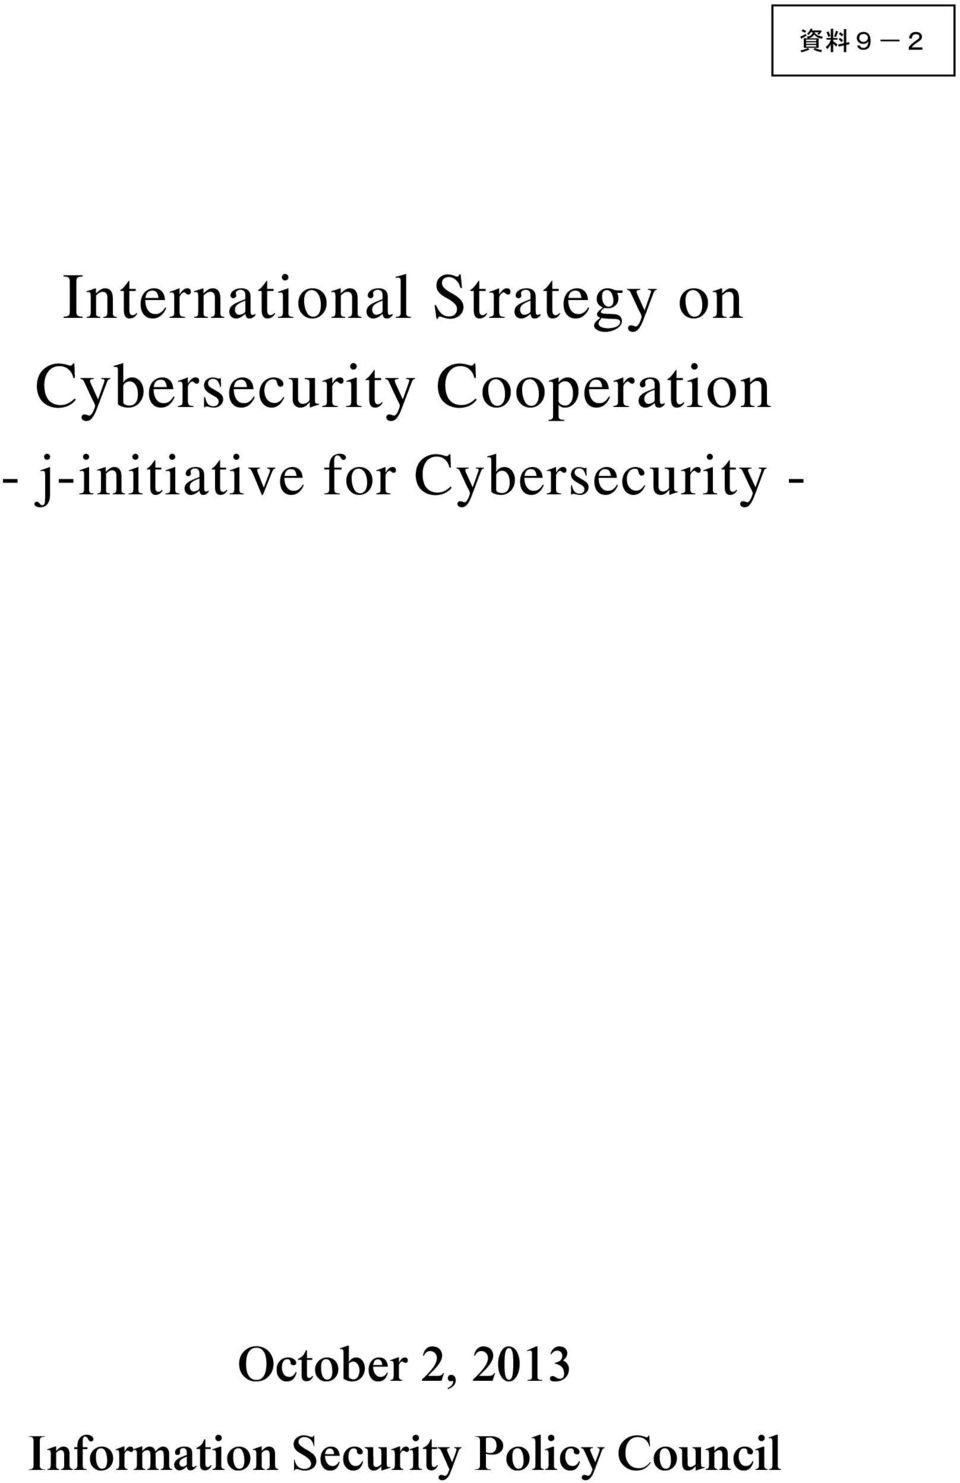 j-initiative for Cybersecurity -